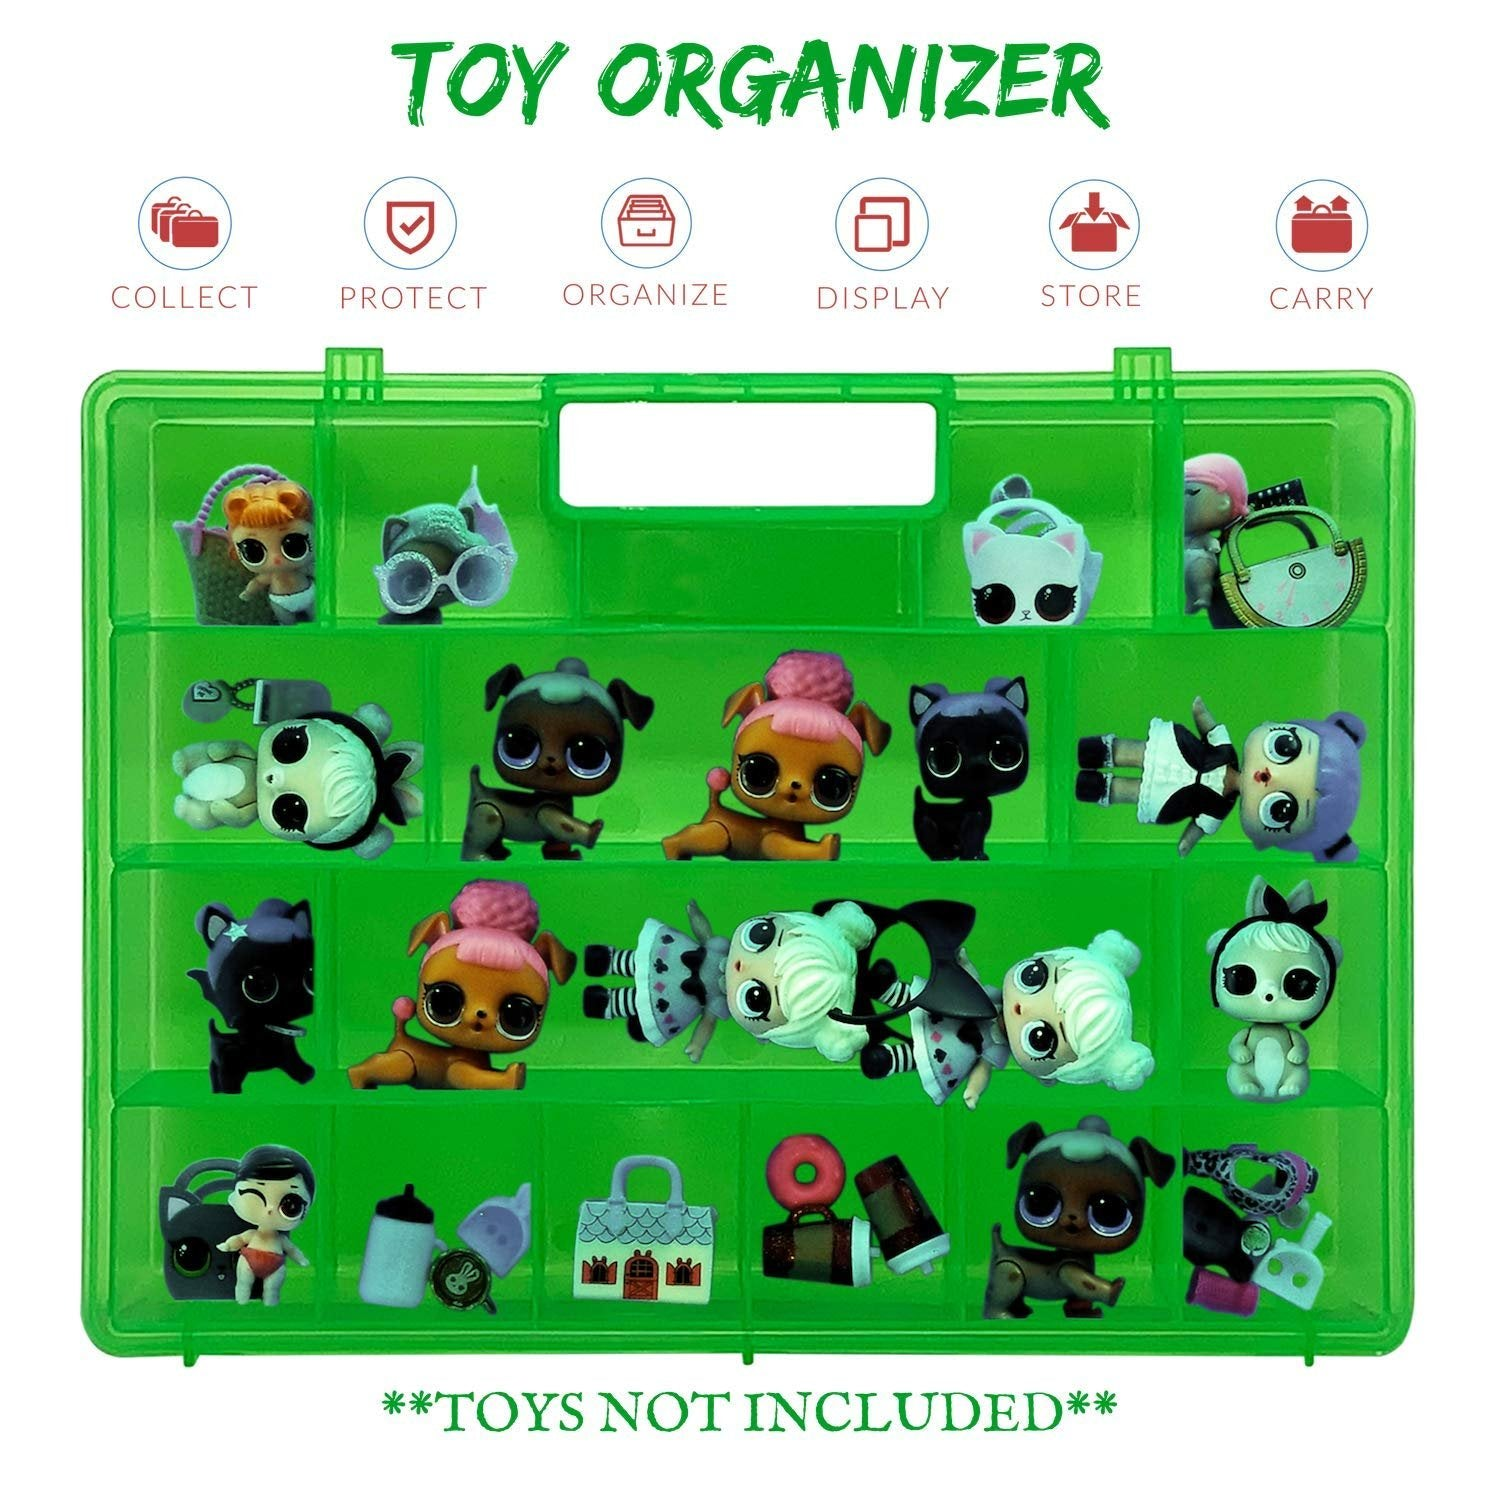 Life Made Better Reinforced Newly Designed Green Organizer Box for Dolls and Accessories, Great Gift Idea for Big Sister & Lil Sister